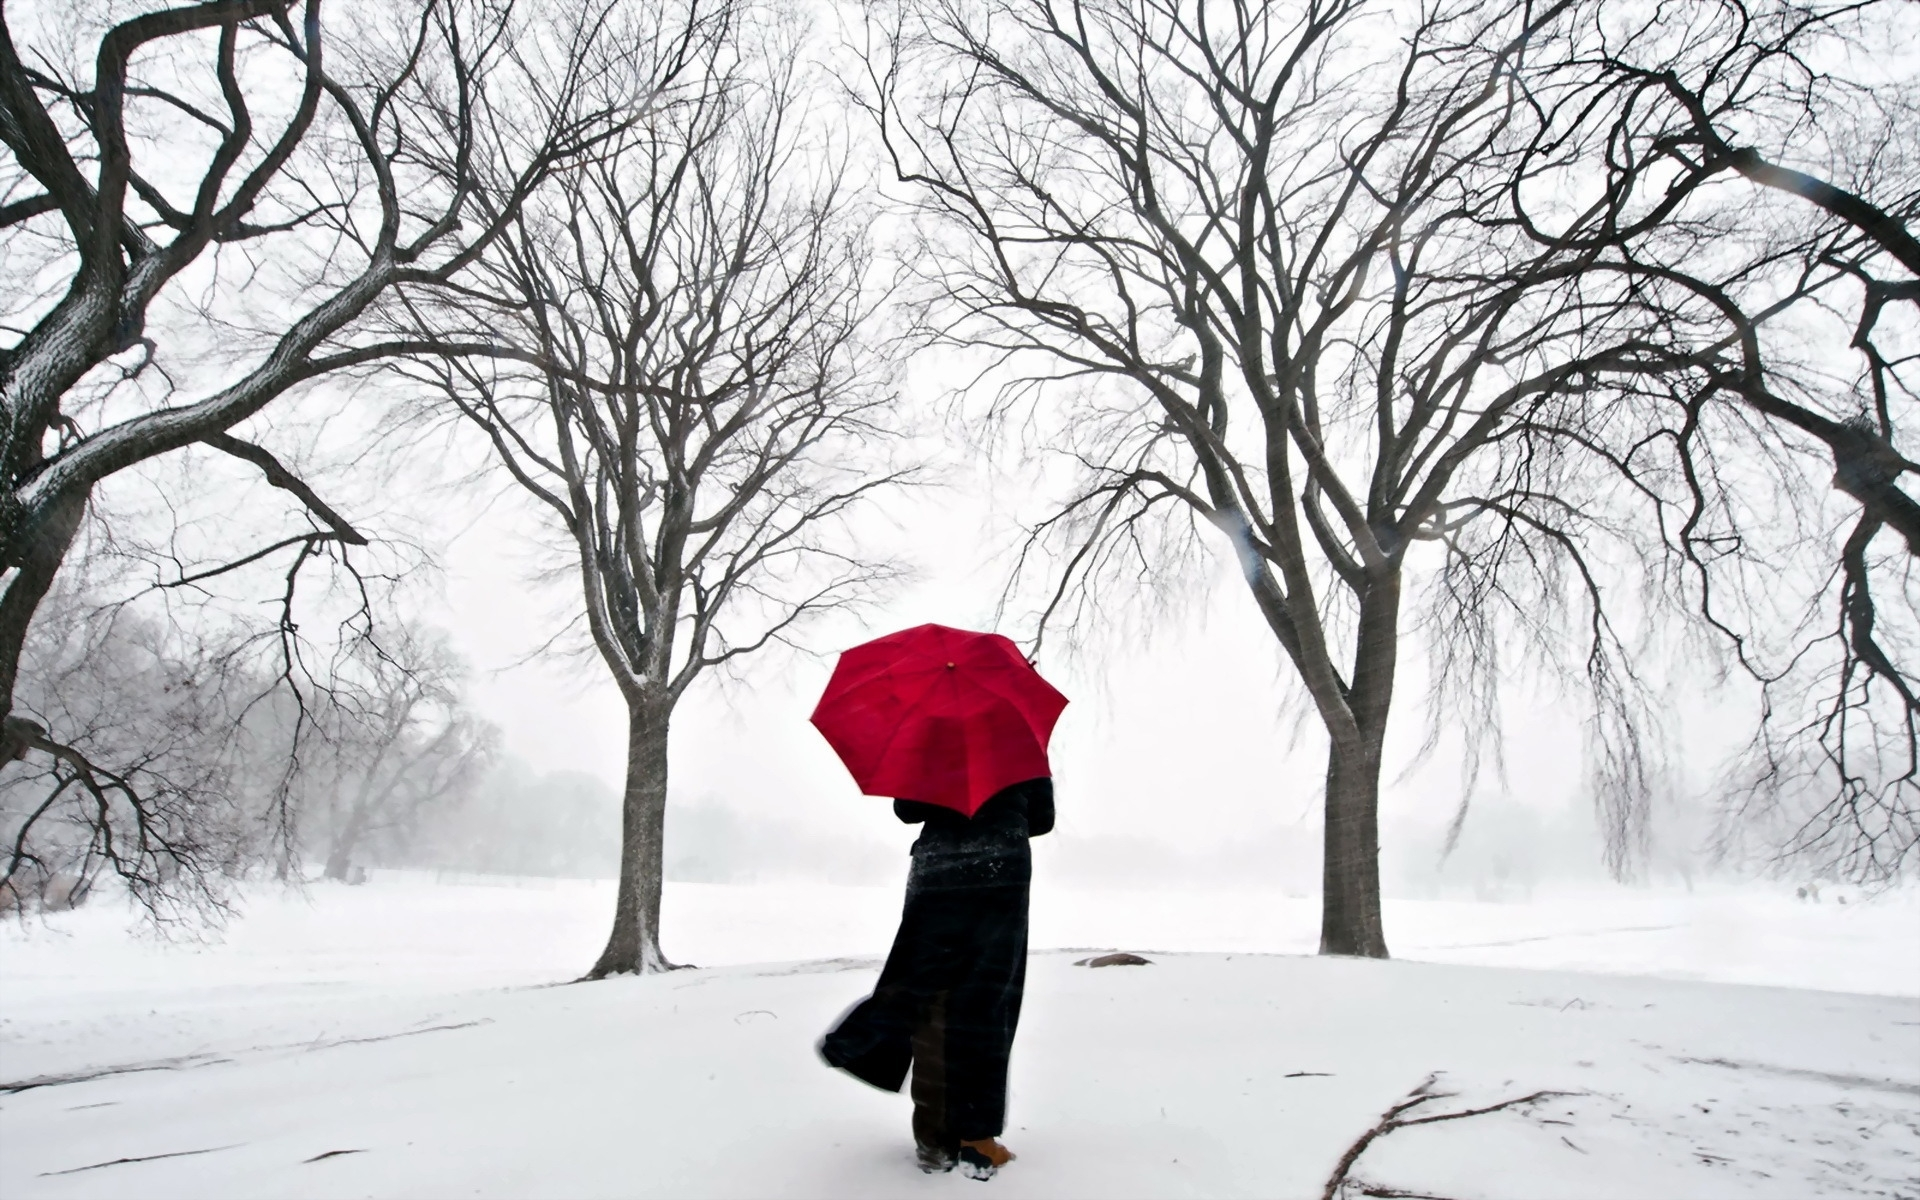 44862 download wallpaper Landscape, Winter, Snow screensavers and pictures for free